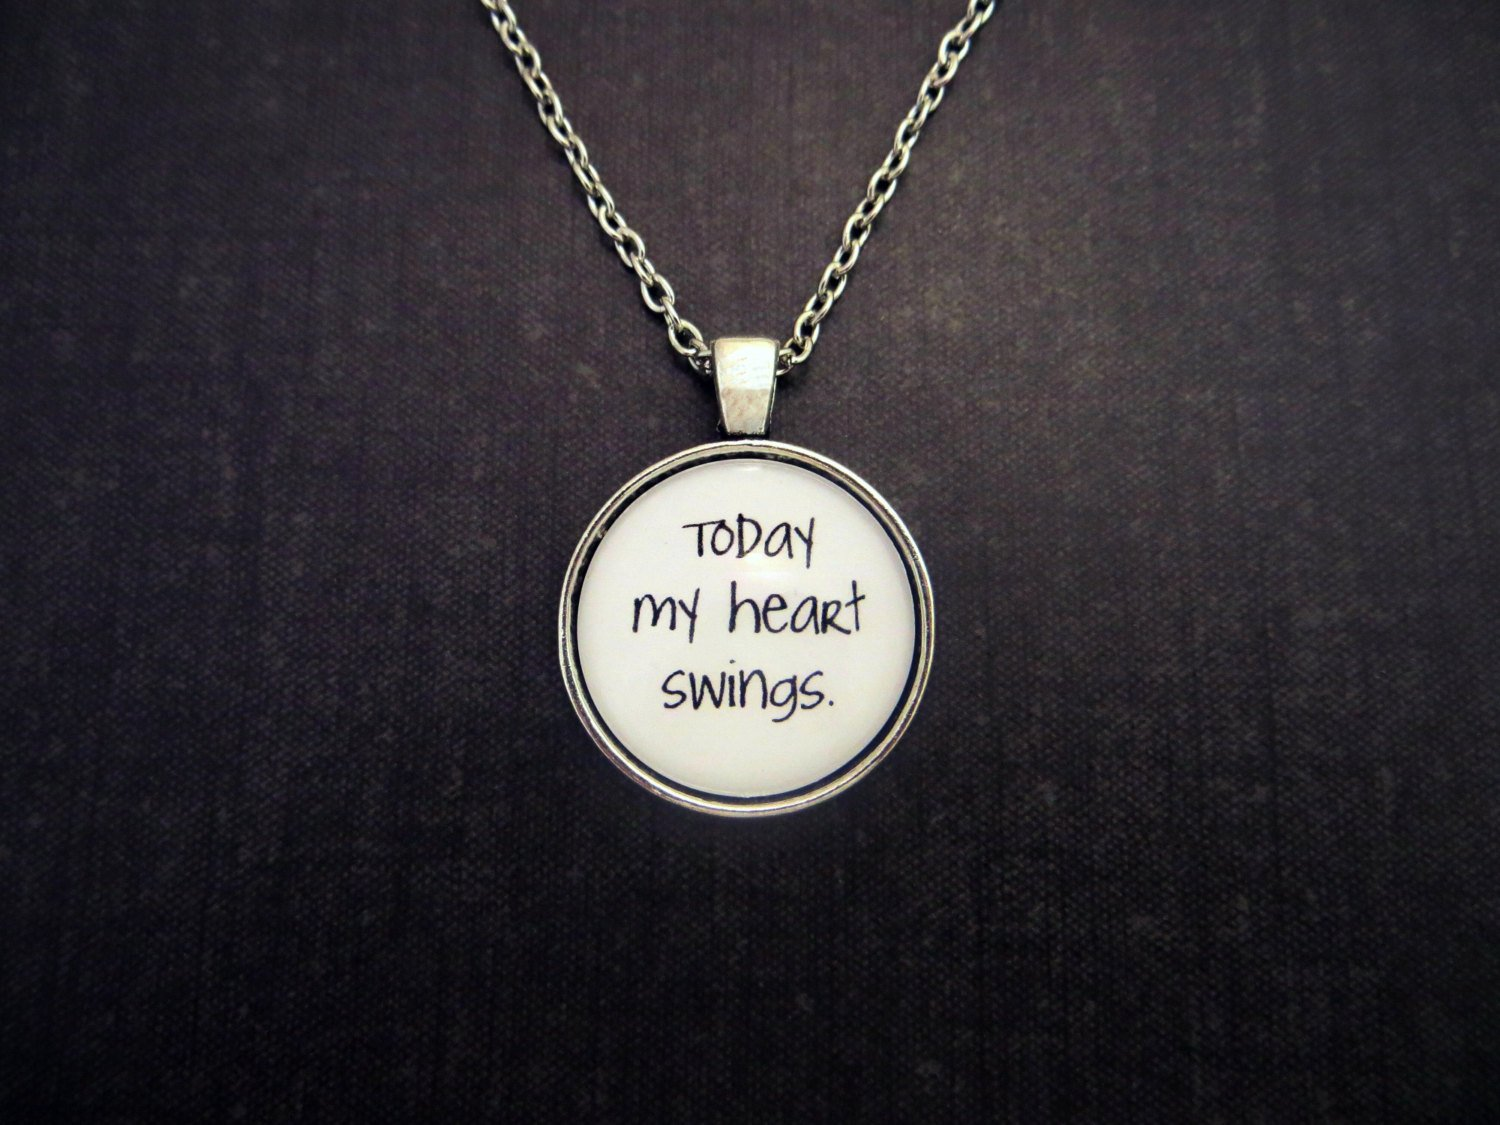 Interpol Heinrich Maneuver Inspired Lyrical Quote Pendant Necklace (Silver, 18 in)